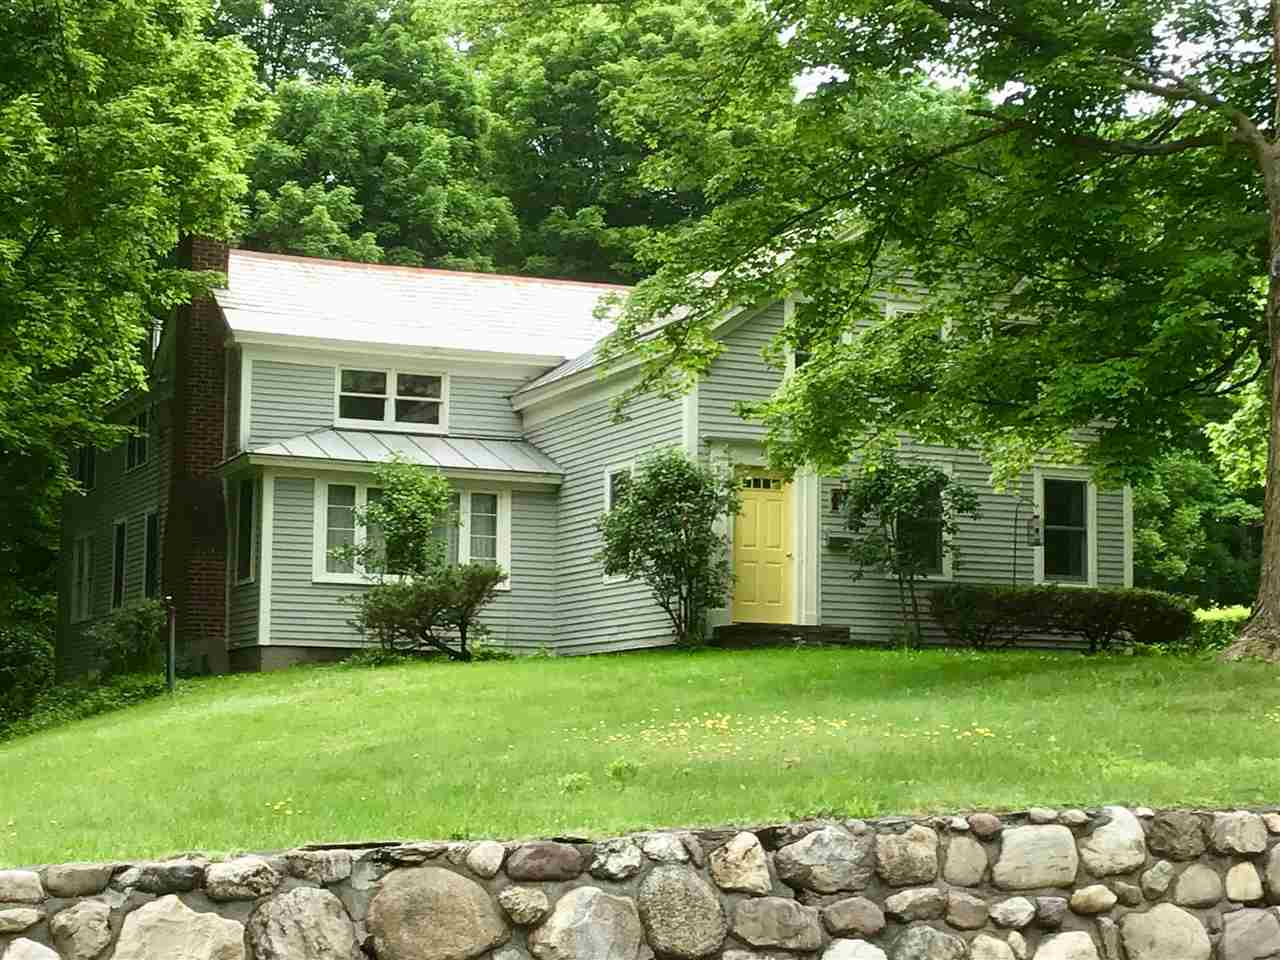 Property for sale at 113 East Main Street, Poultney,  VT 05764